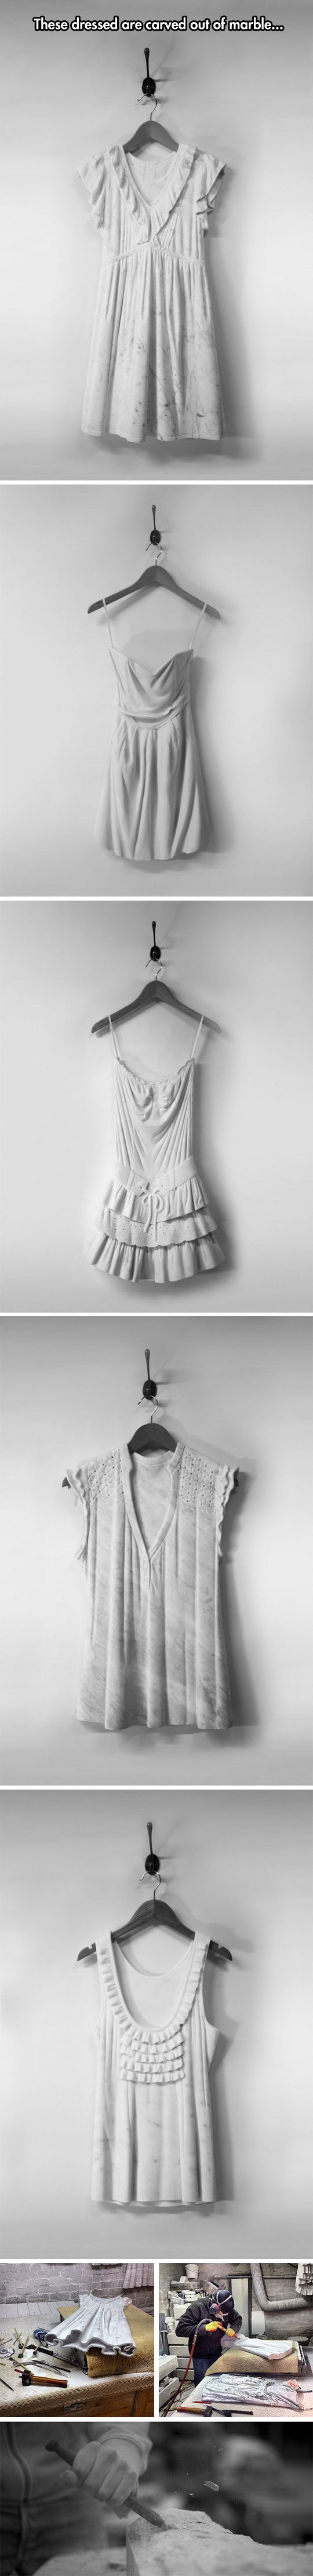 Dresses Carved From Marble